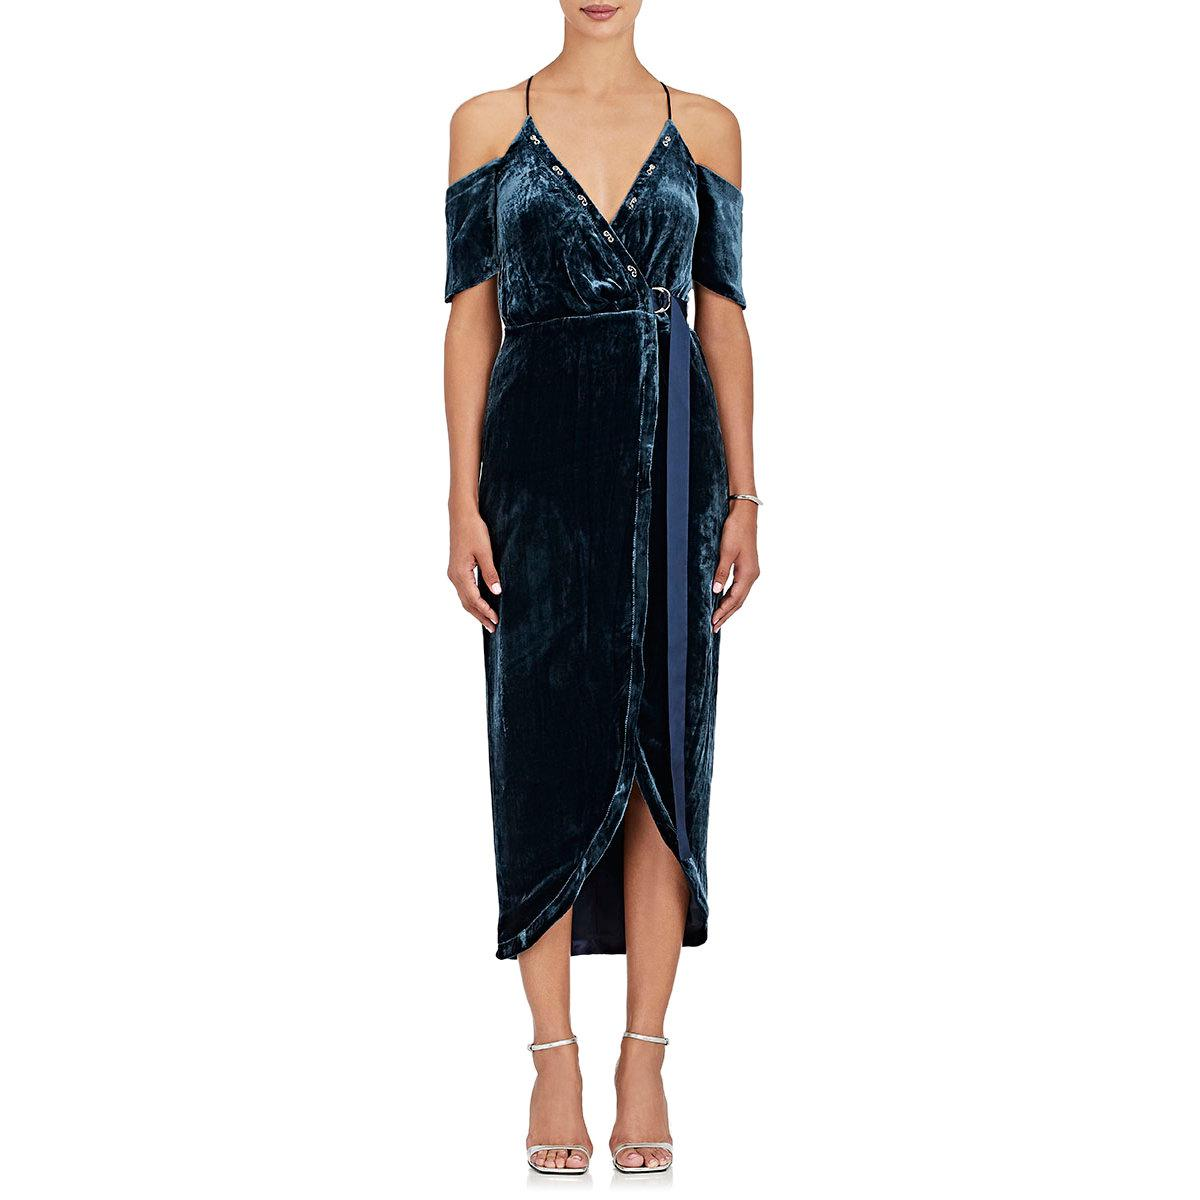 Manning Cartell zig zag printed dress From China Cheap Price zM5uX